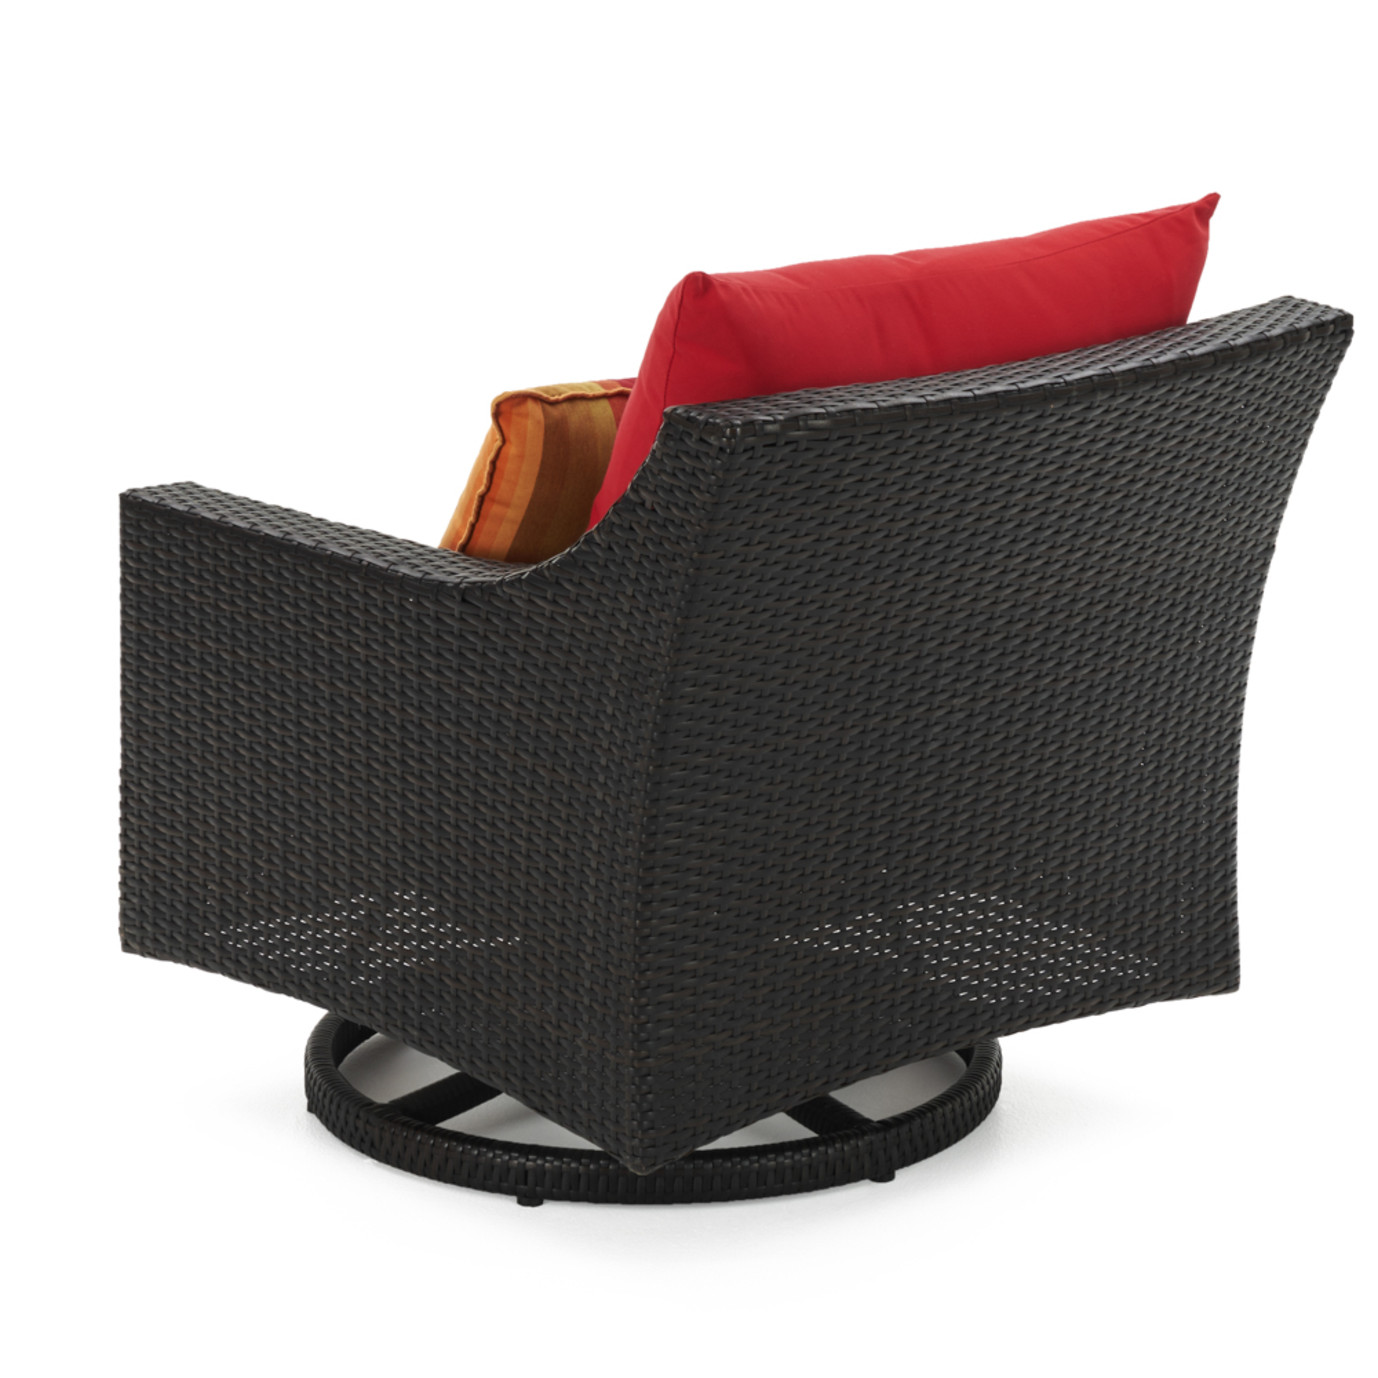 Deco™ Deluxe 5pc Motion Club & Ottoman Set - Sunset Red